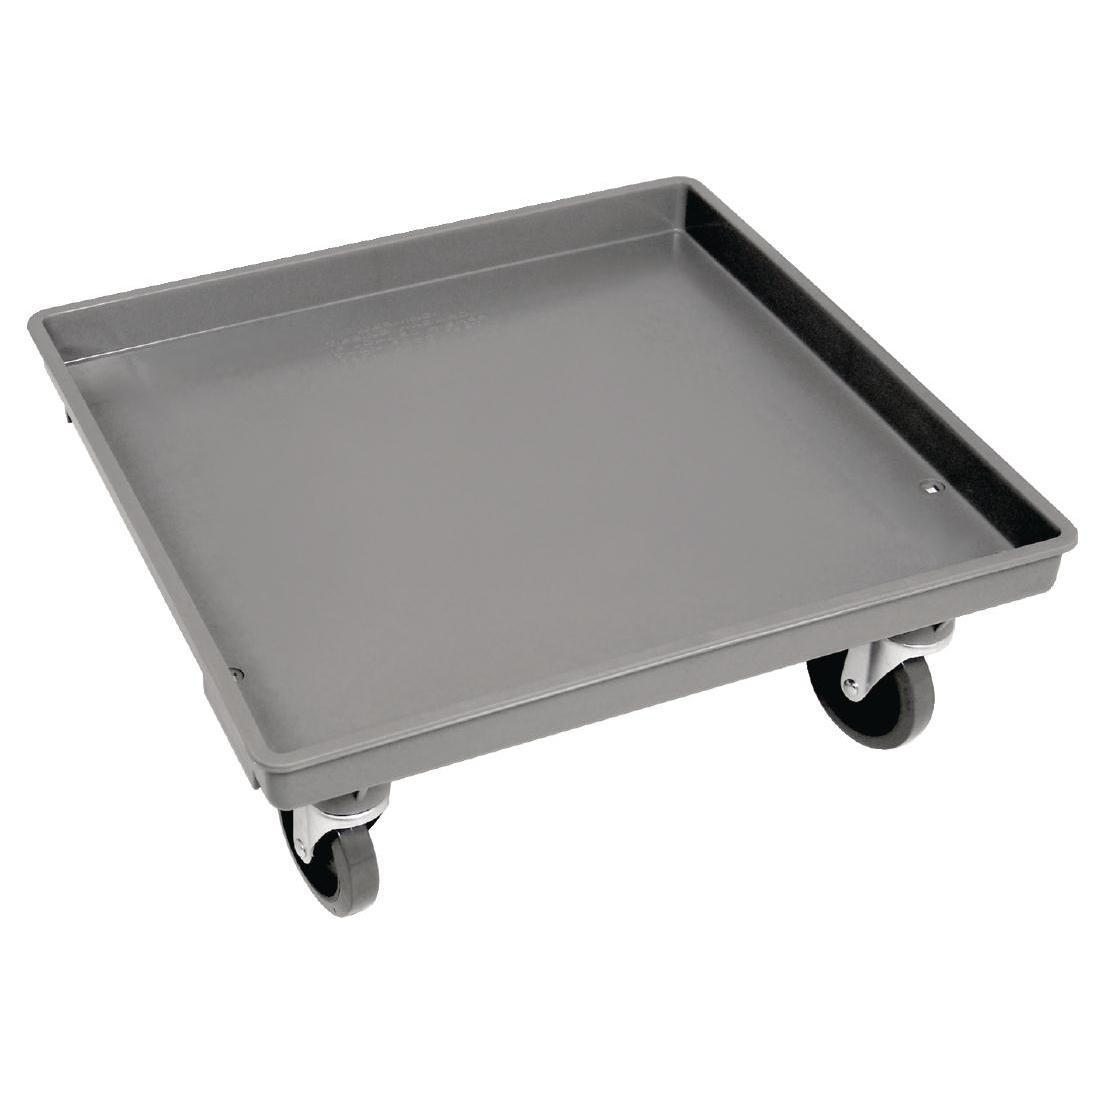 Dishwasher Rack Dolly - Each - CB006